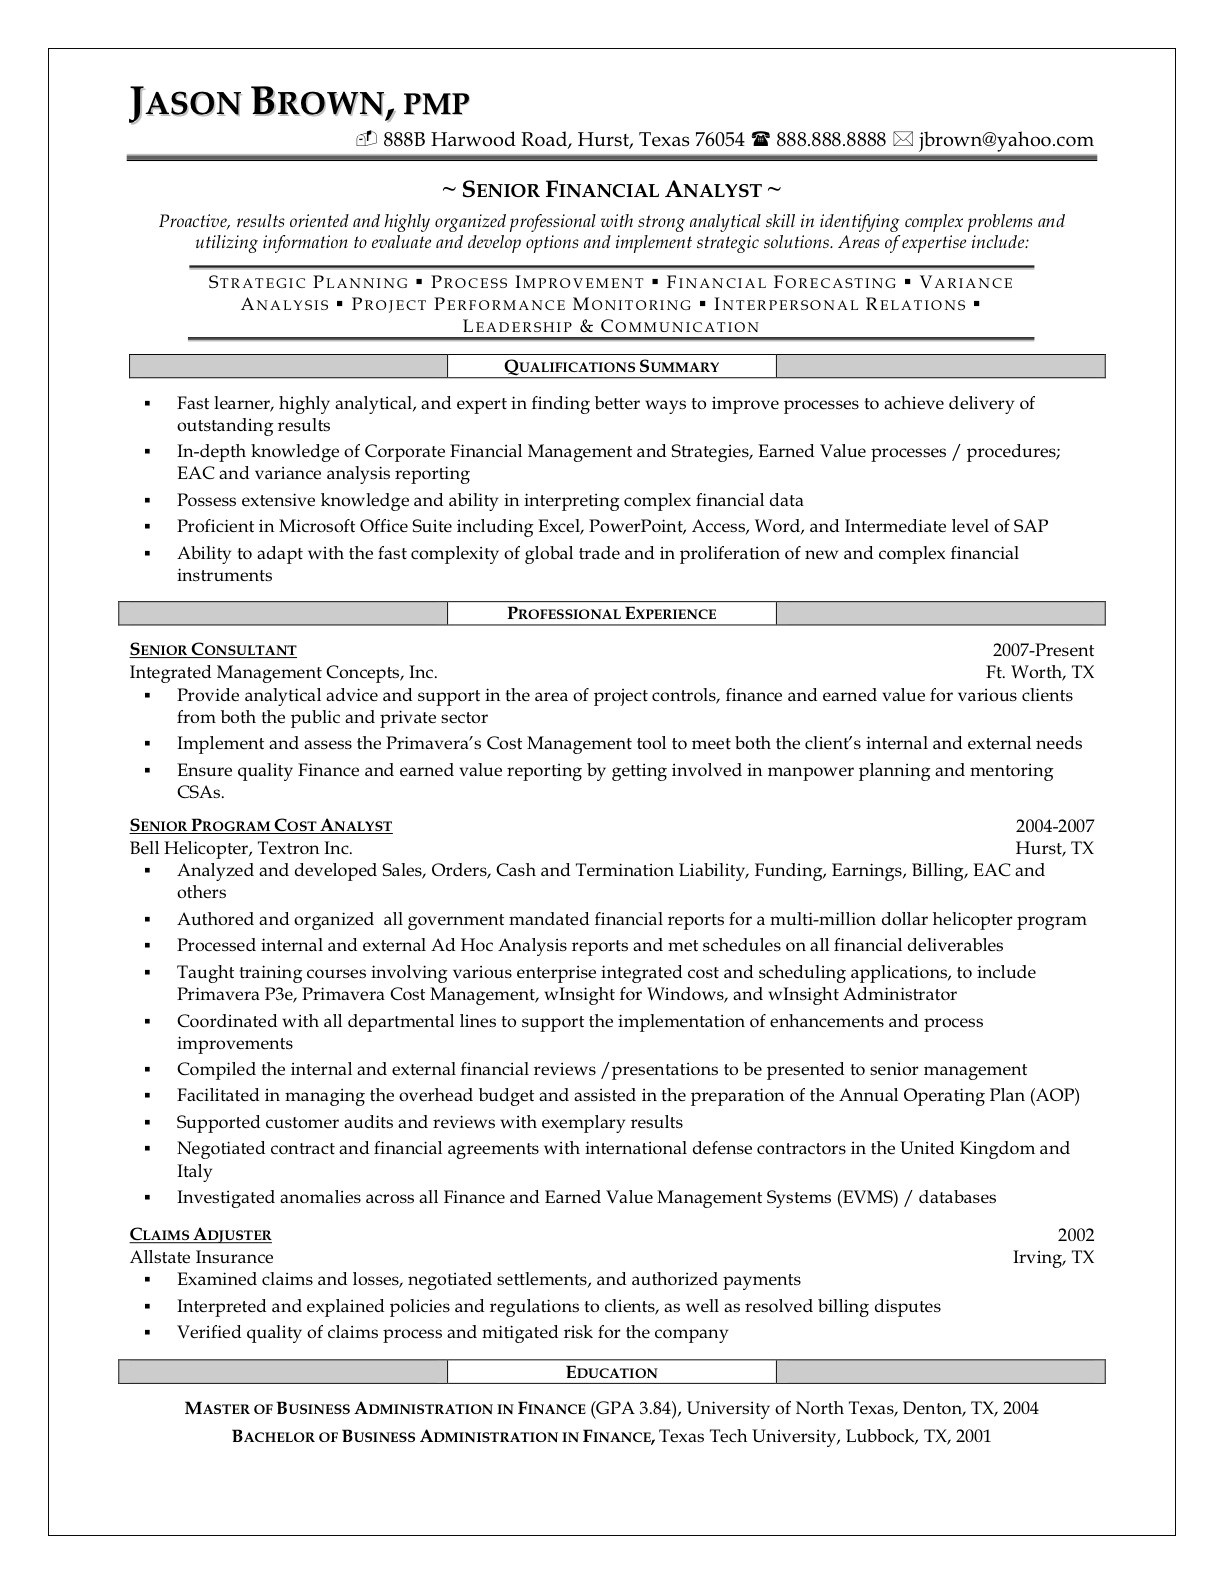 Sample resume for financial analysts